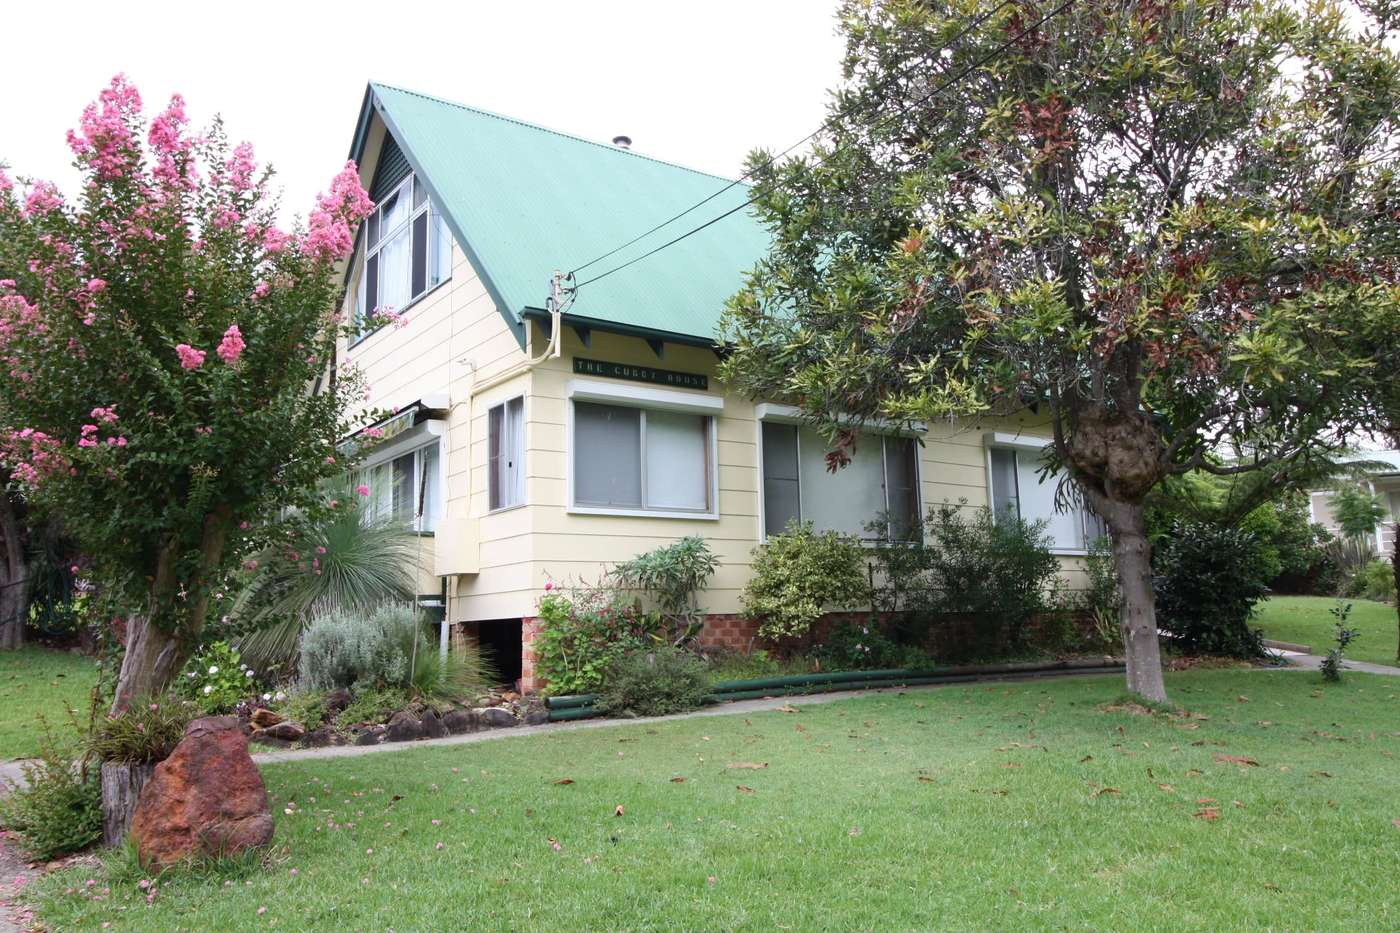 Main view of Homely house listing, 10 Cherry Street, Bendalong, NSW 2539